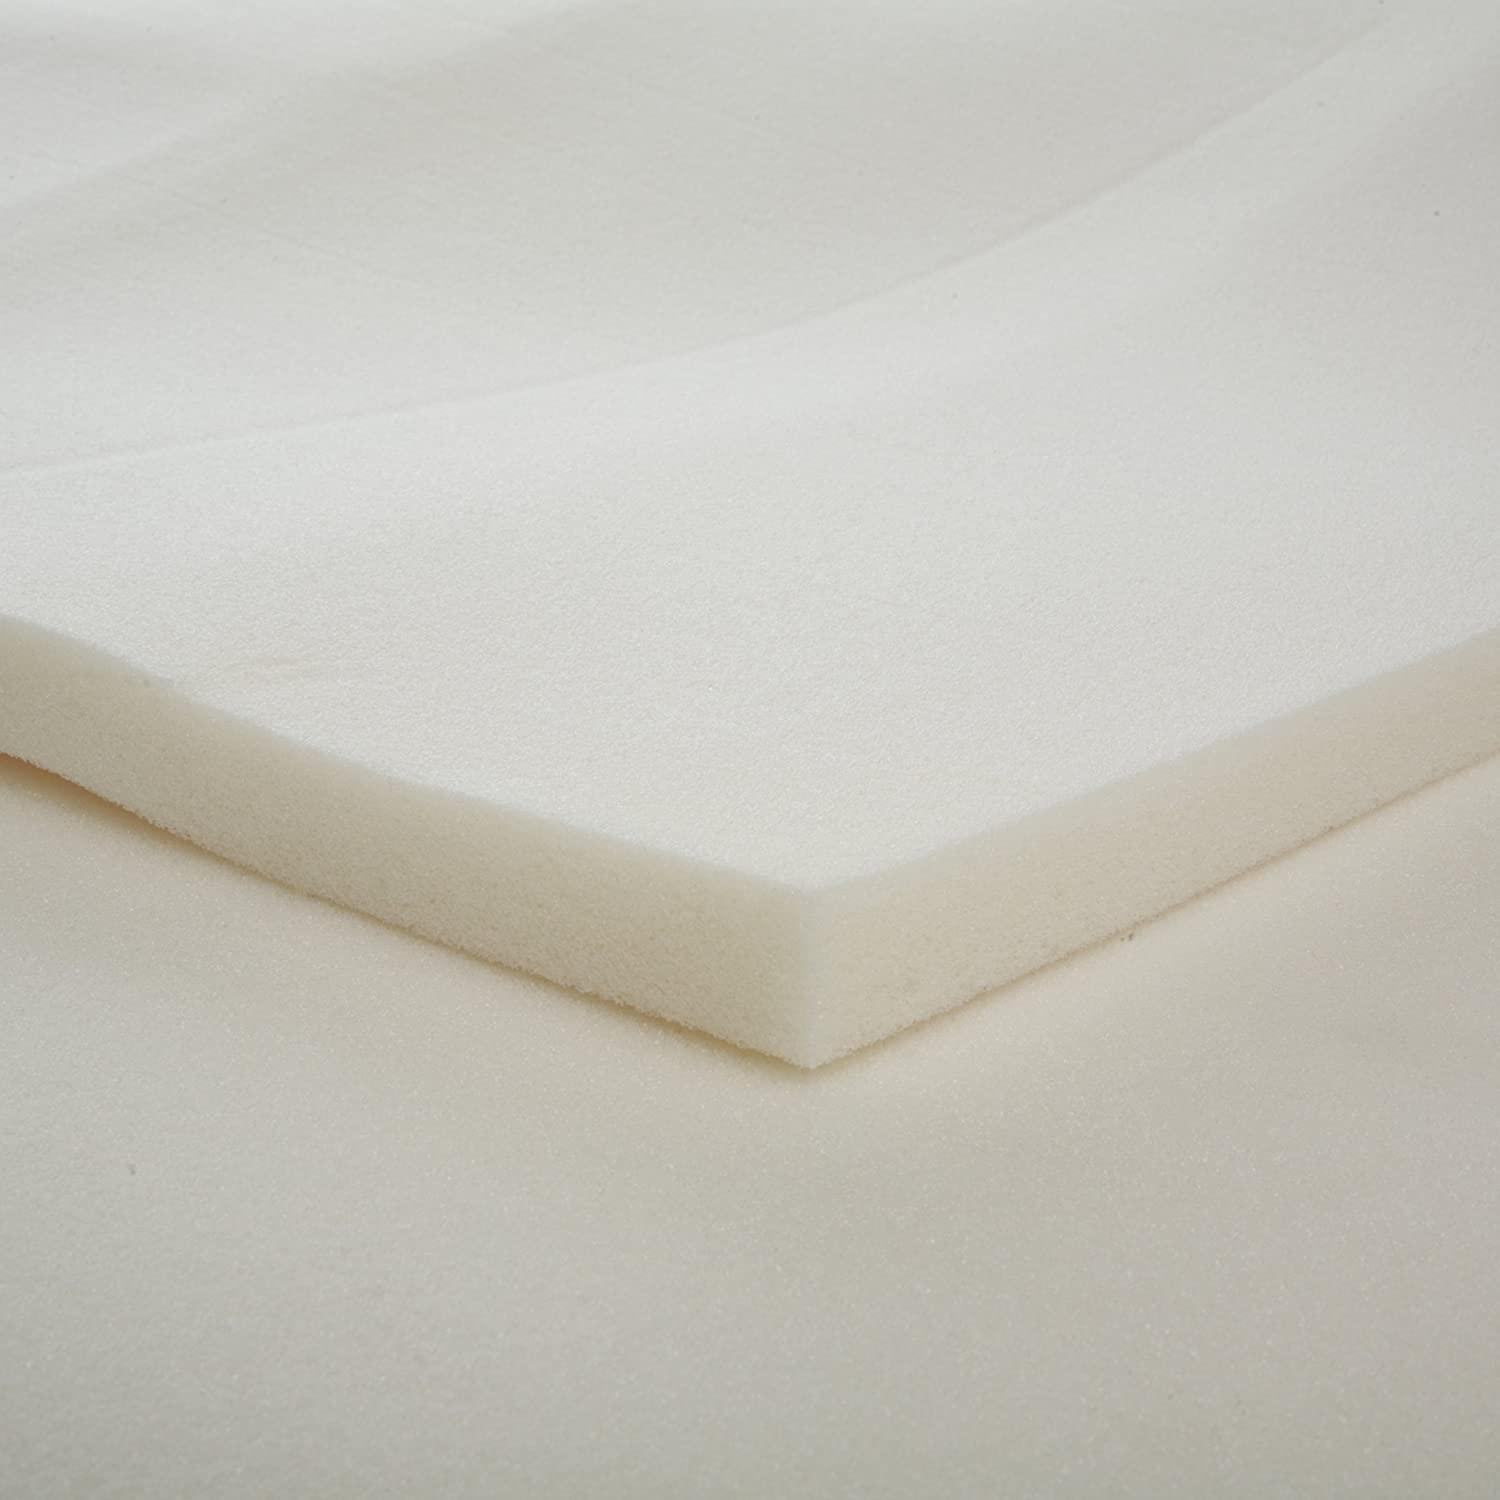 1-Inch Slab Memory Foam Mattress Topper Queen SleepBetter 31374516811